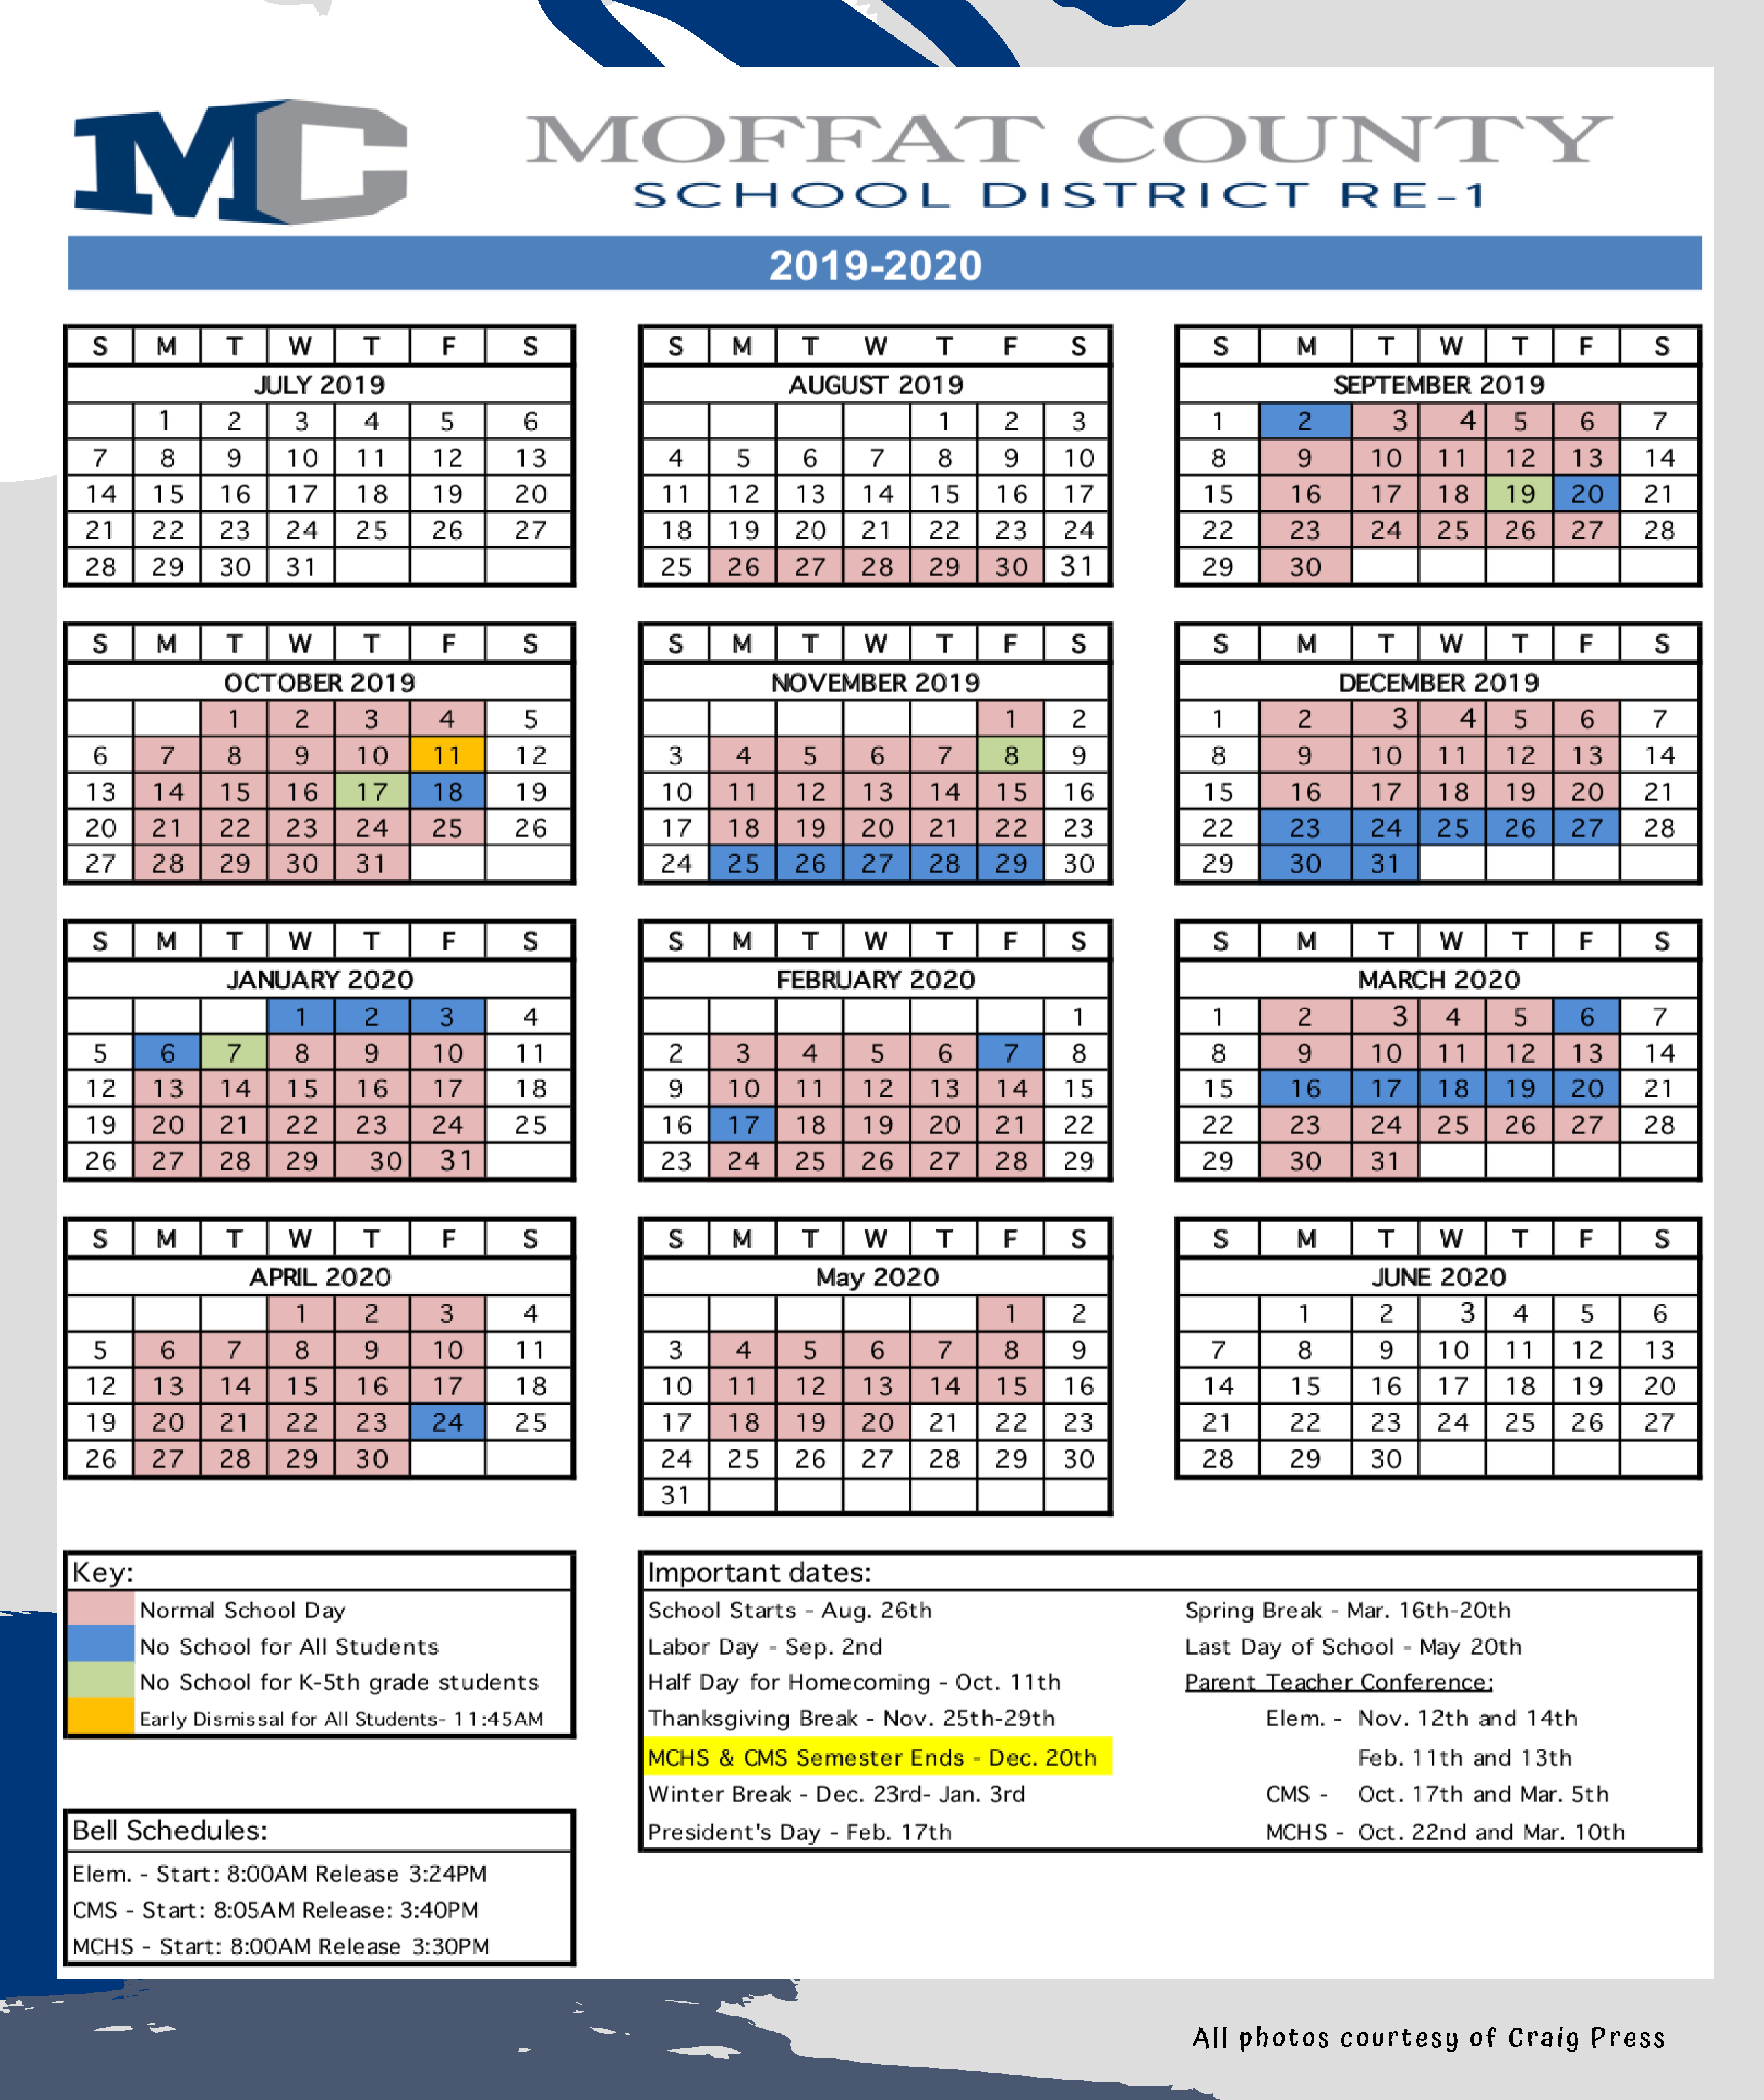 Home - Moffat County School District Throughout Middle Country School District Calendar